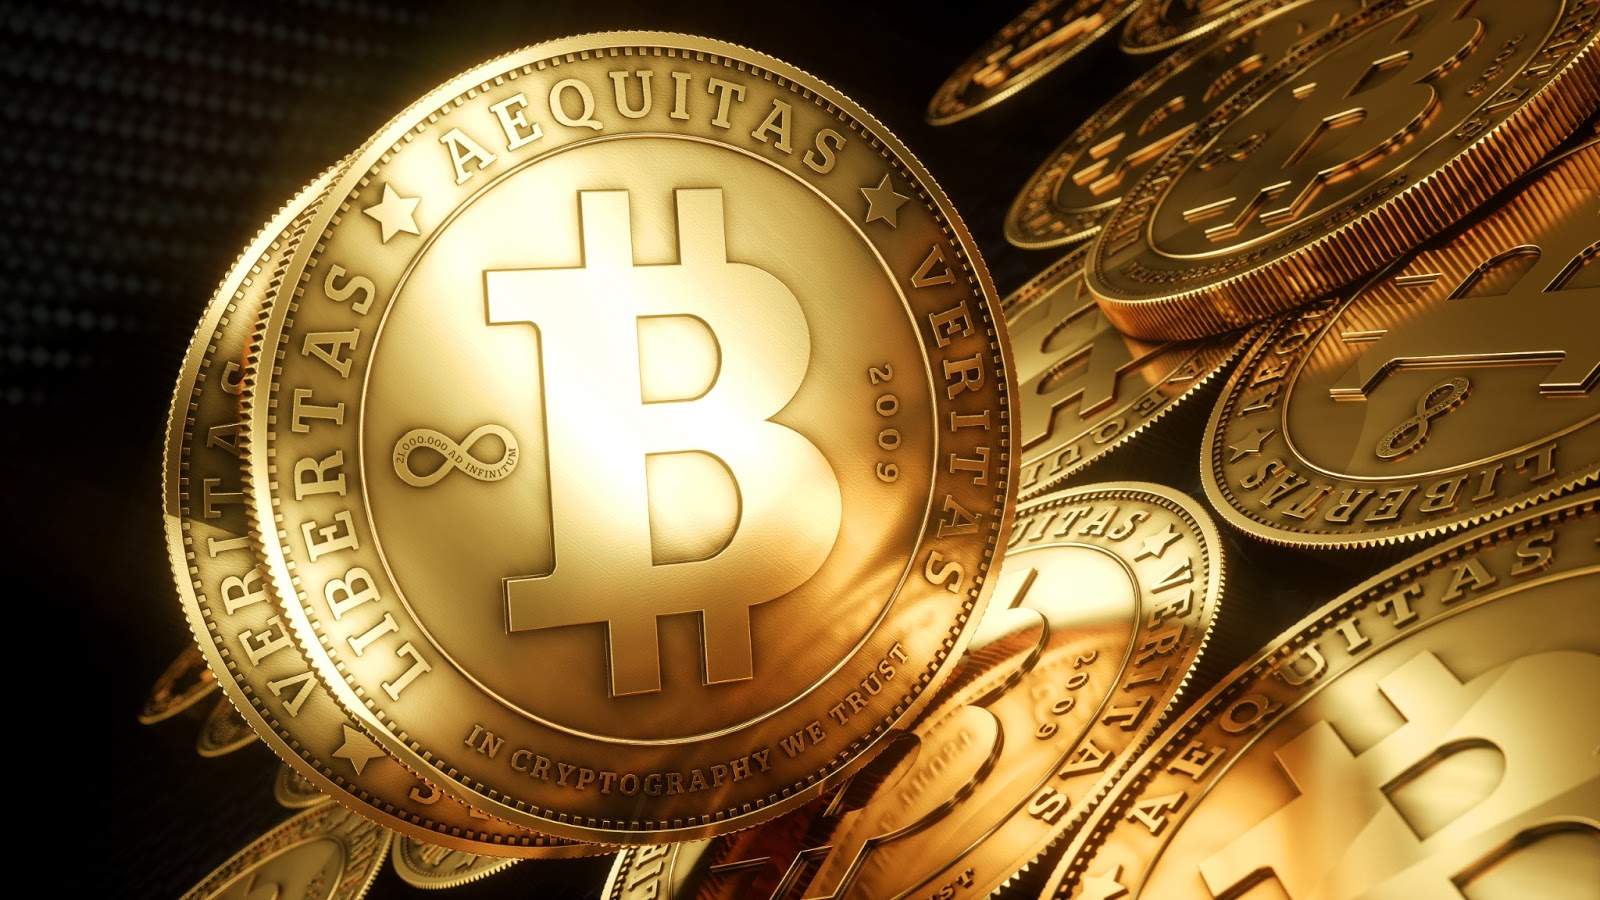 Bitcoin: The Future's Currency?